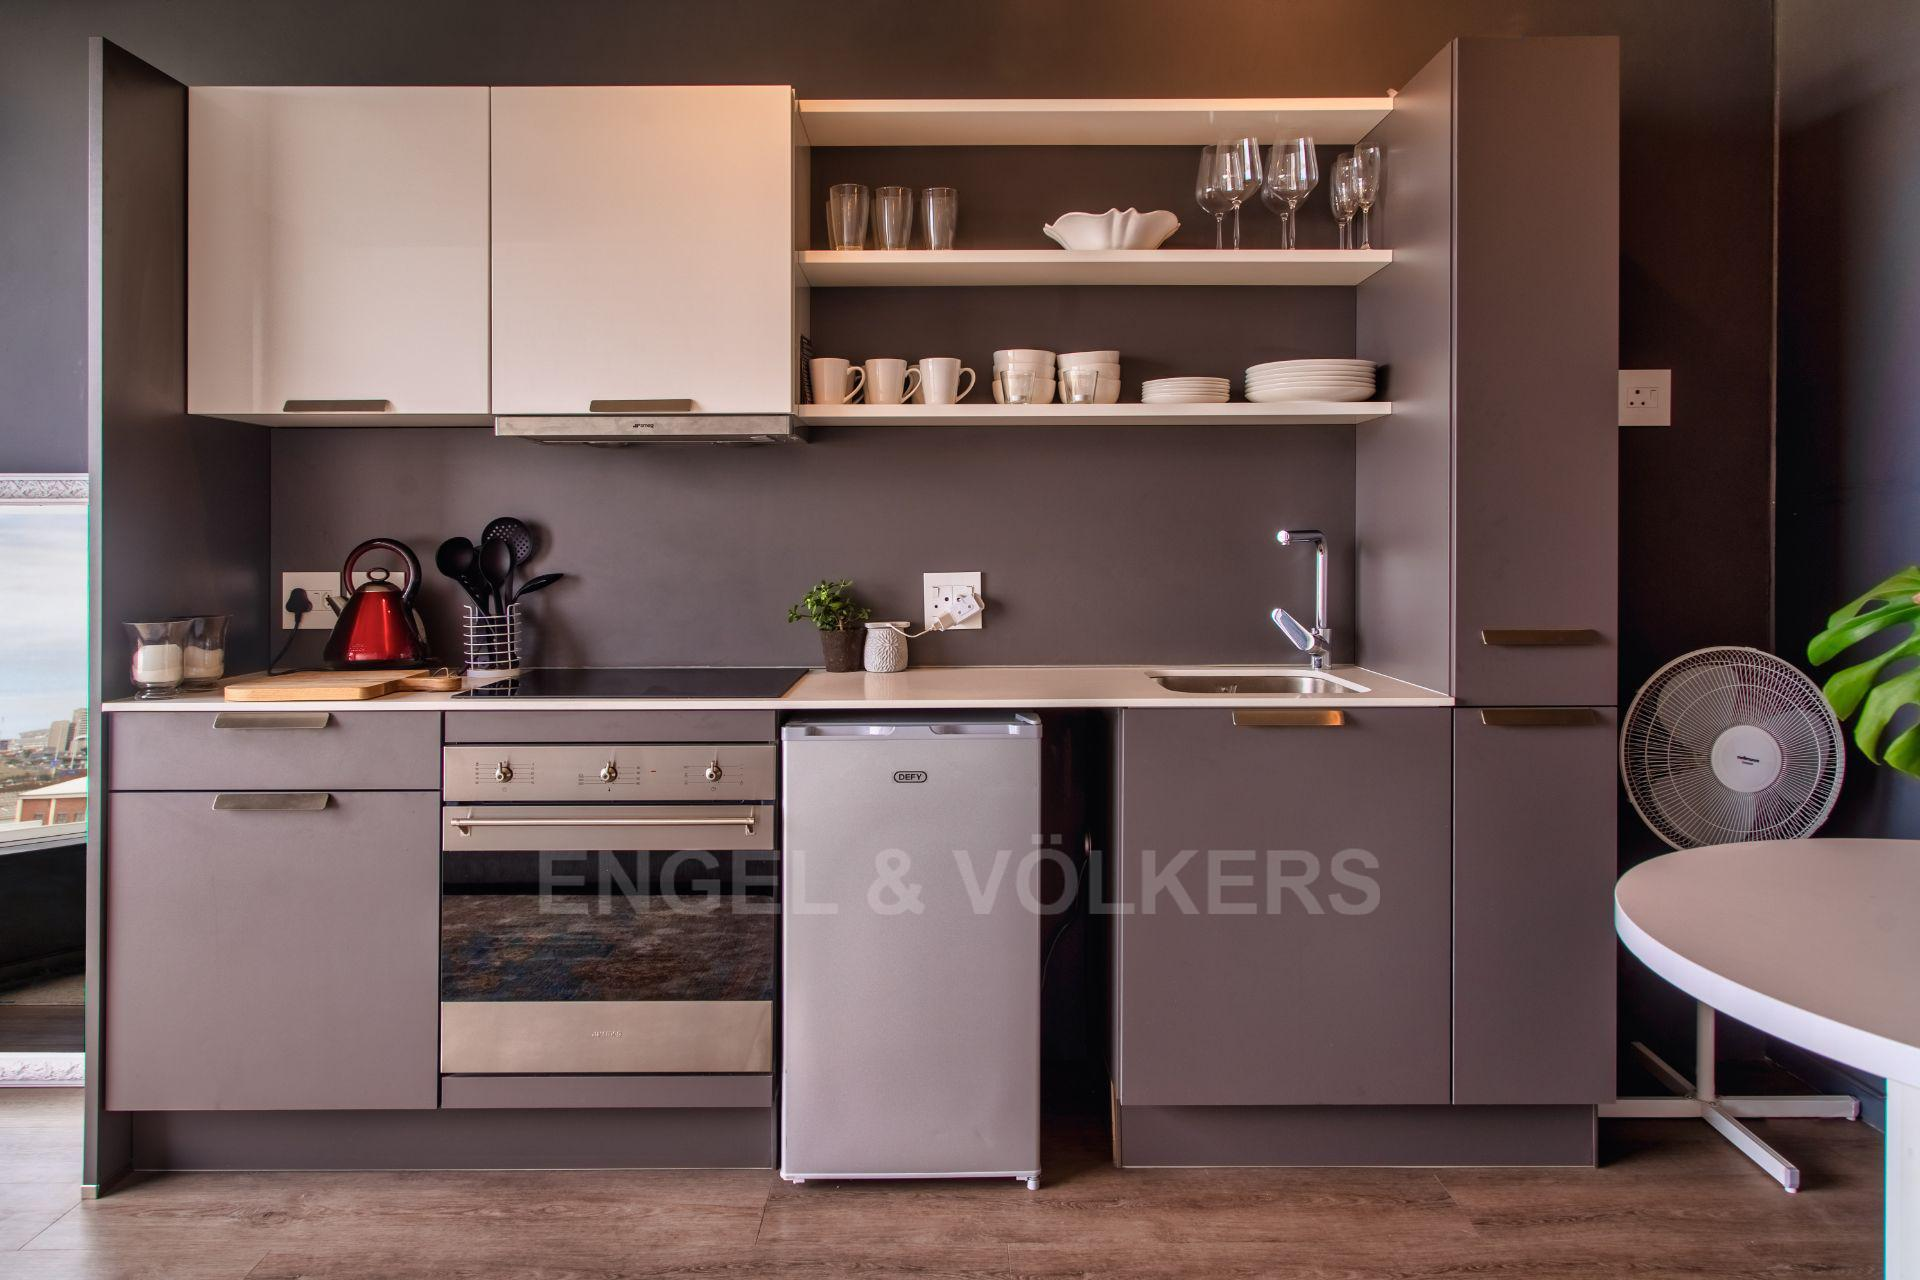 Apartment in Woodstock - Kitchen 2.0